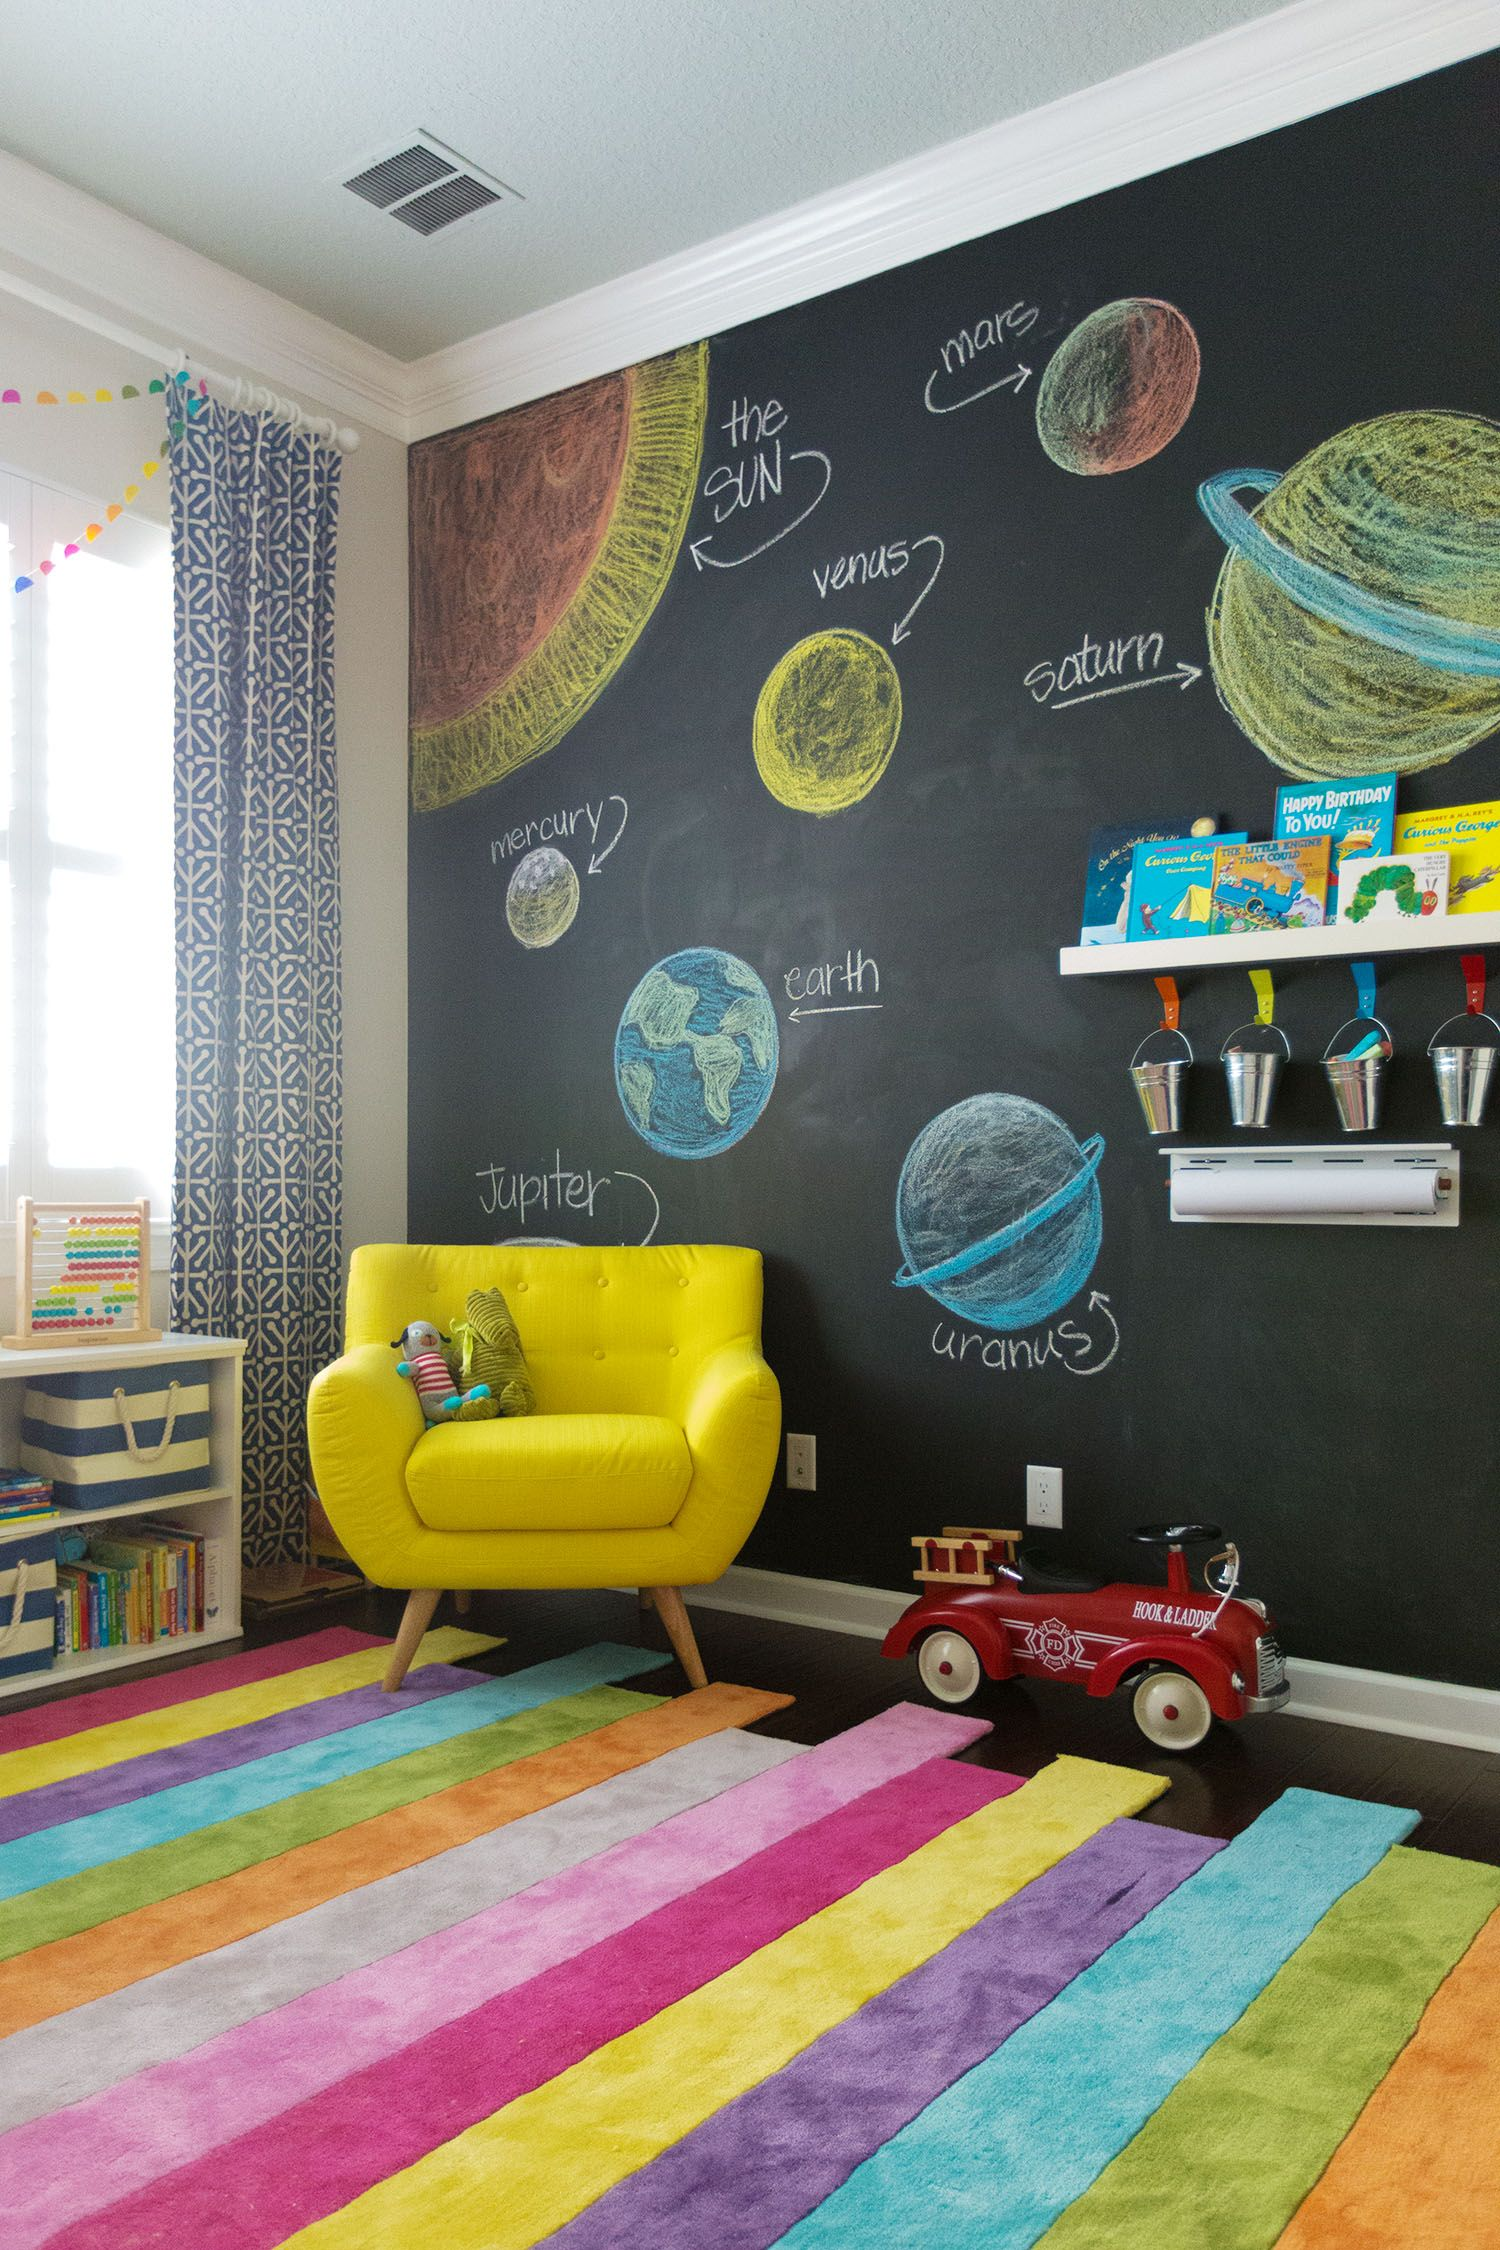 wow sehr sch ne idee f r das kinderzimmer tafelwand bemalen l universum l planeten. Black Bedroom Furniture Sets. Home Design Ideas